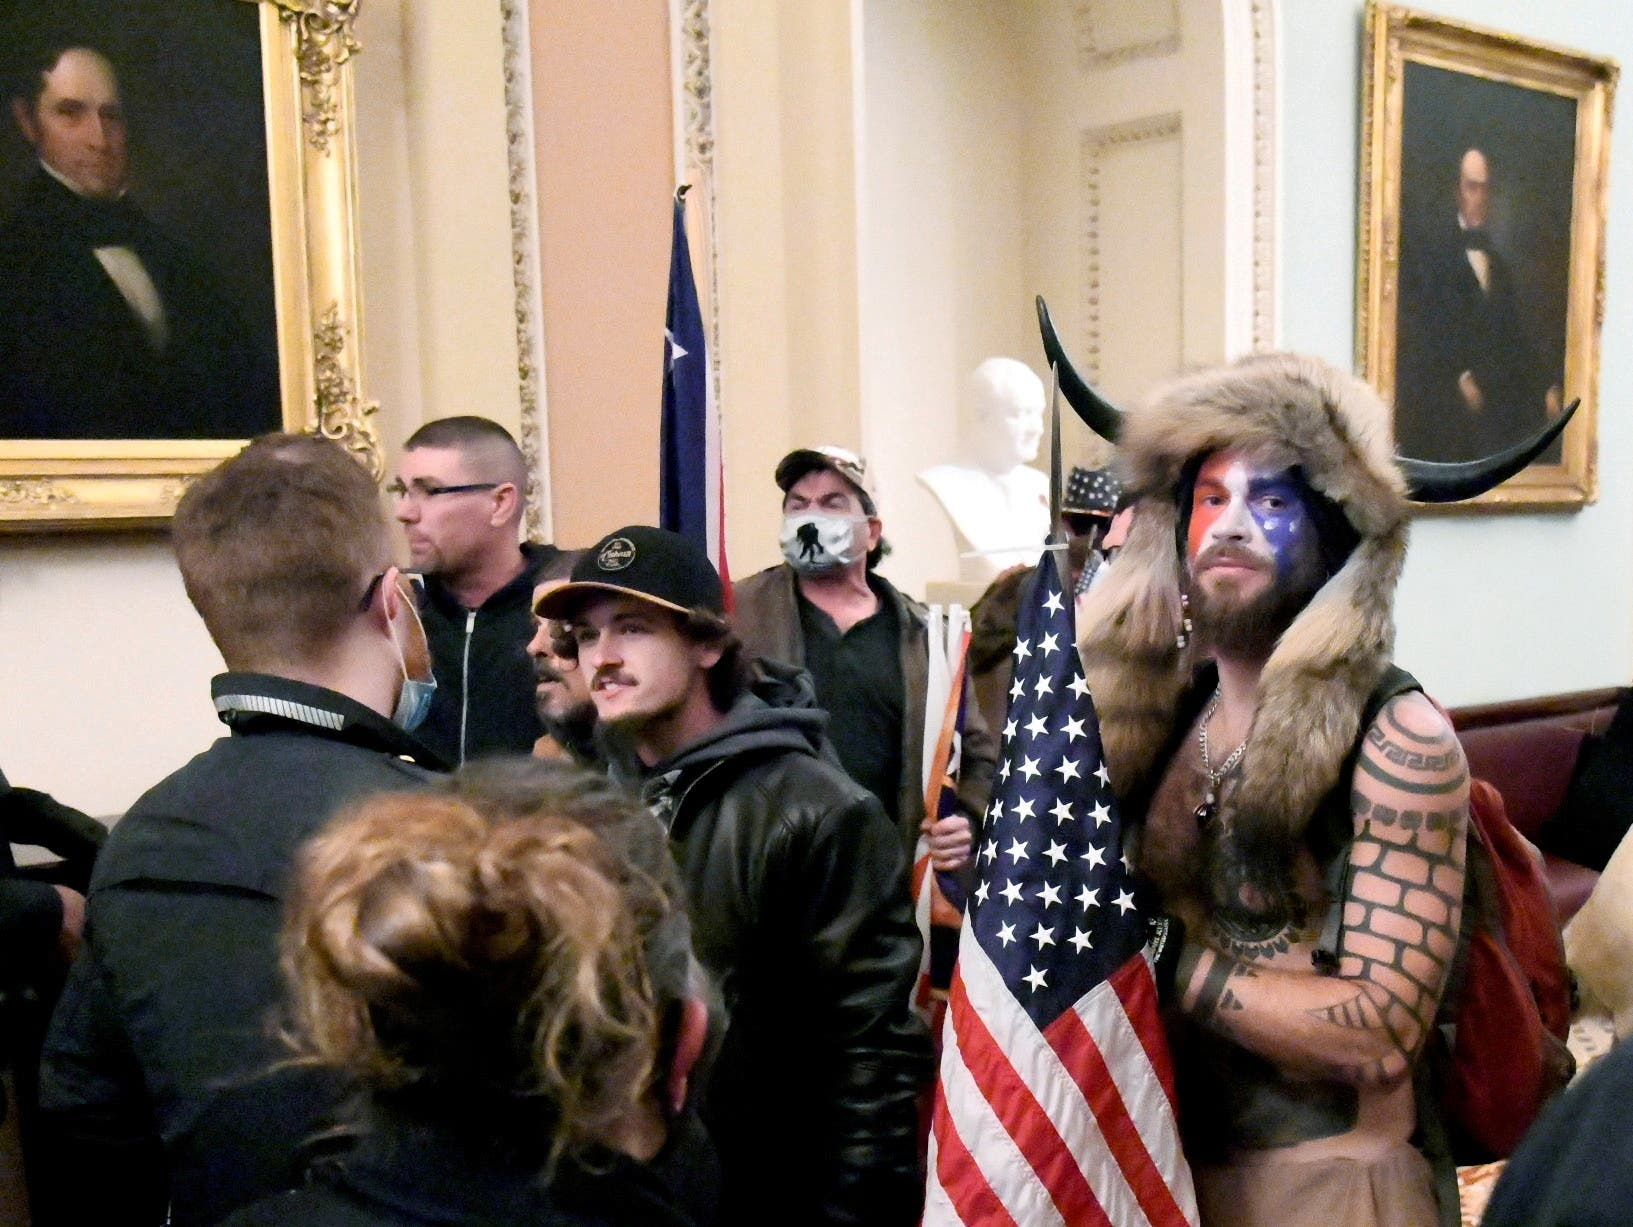 Jacob Anthony Chansley of Arizona stands with other supporters of U.S. President Donald Trump as they demonstrate on the second floor of the U.S. Capitol near the entrance to the Senate after breaching security defenses, in Washington, U.S., January 6, 2021. (File Photo: Reuters)